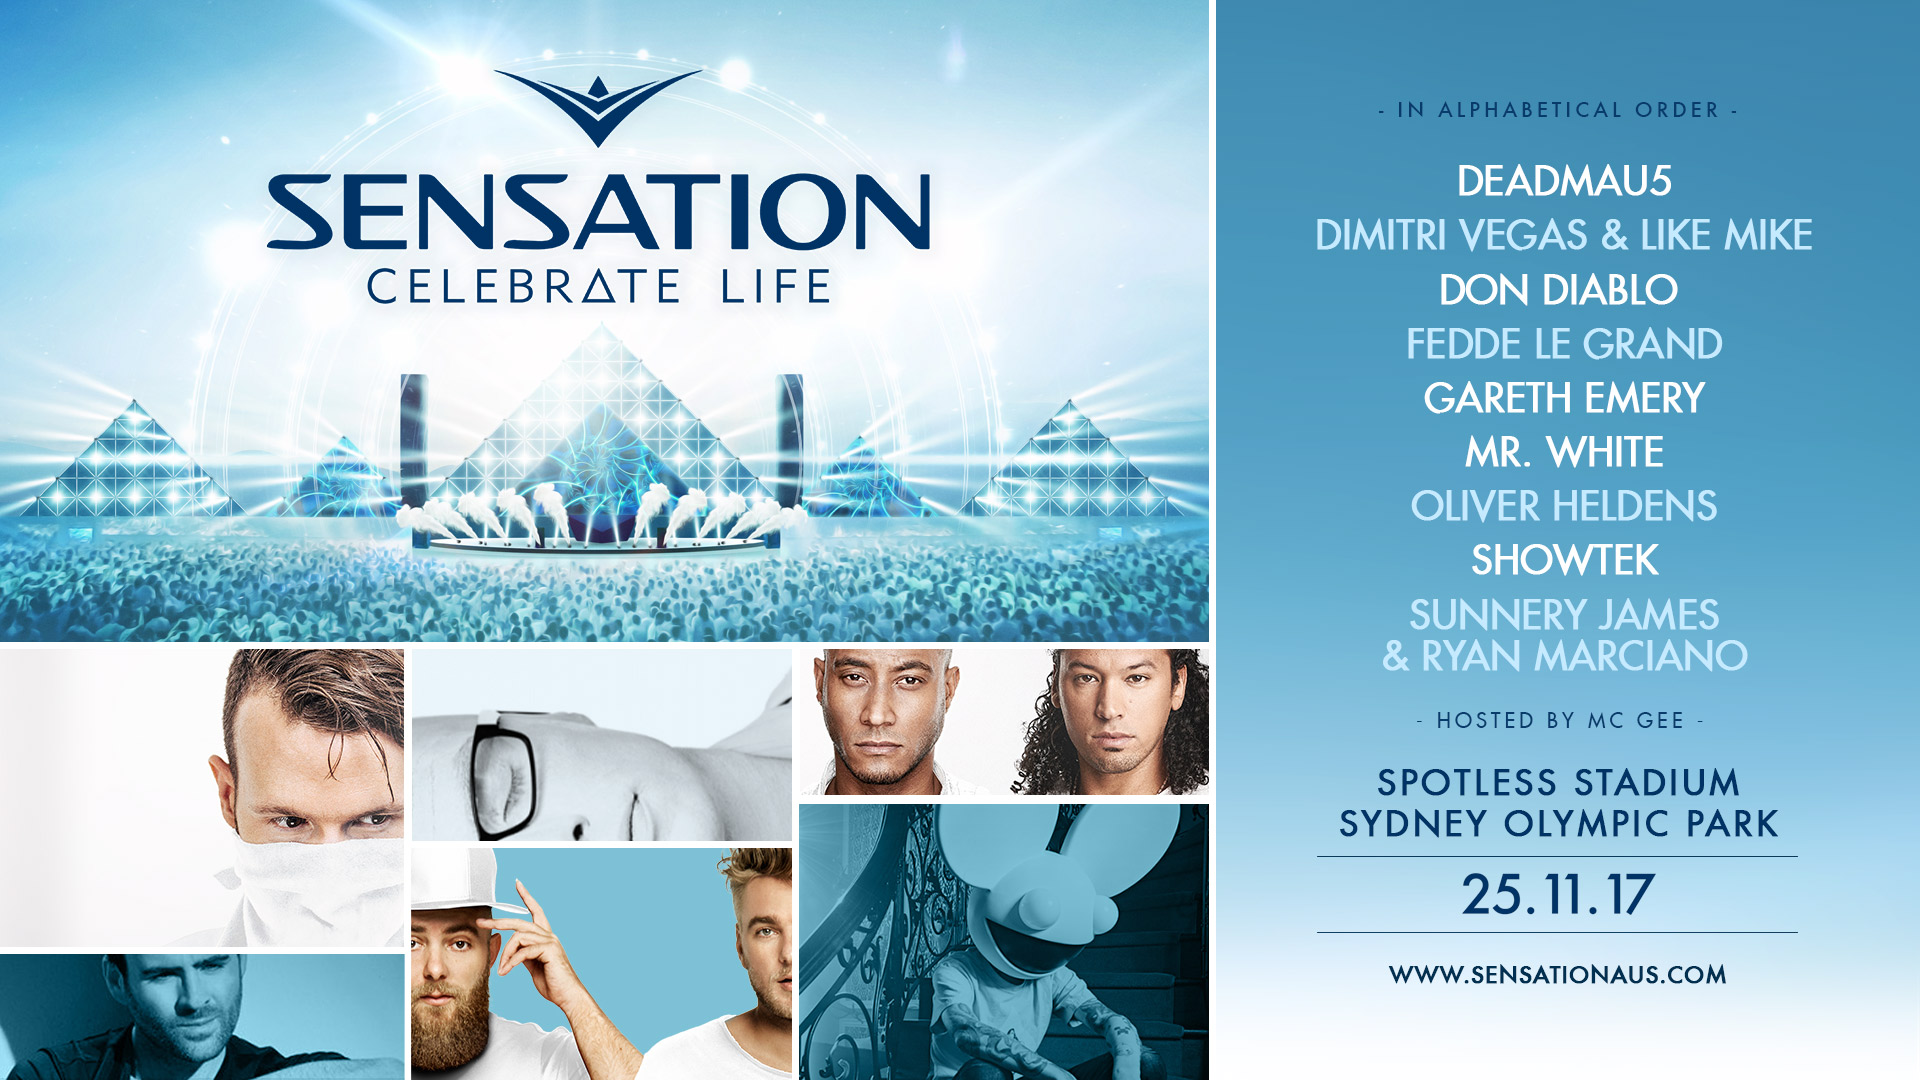 Tickets for Sensation 'Celebrate Life' Australia 2017 in Sydney Olympic Park from Ticketbooth